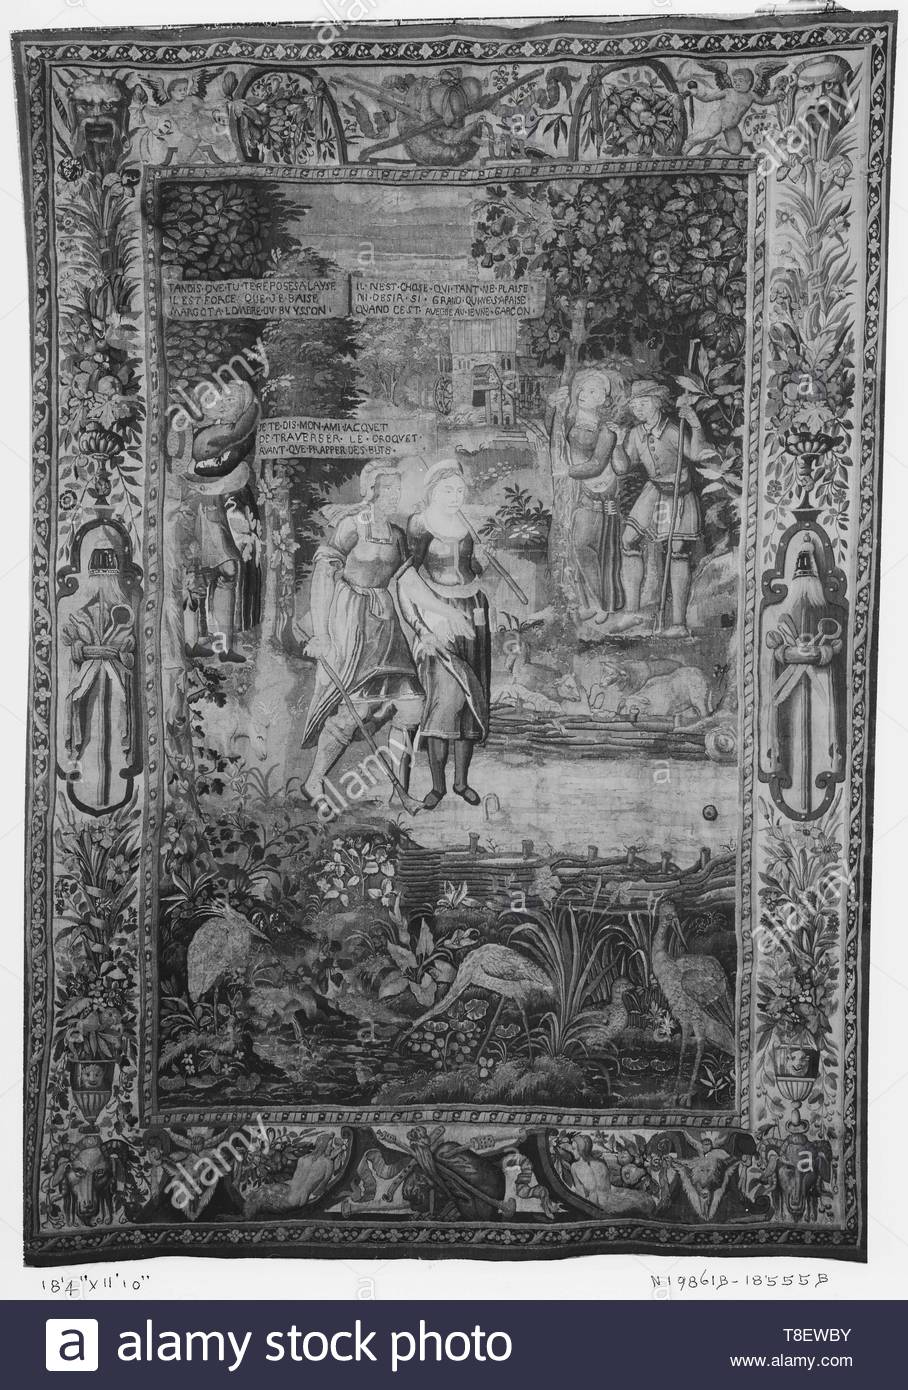 Leclerc, Jean (French, 1587-1633) (designed after) [printmaker]-Game of croquet, Image 2 - Stock Image